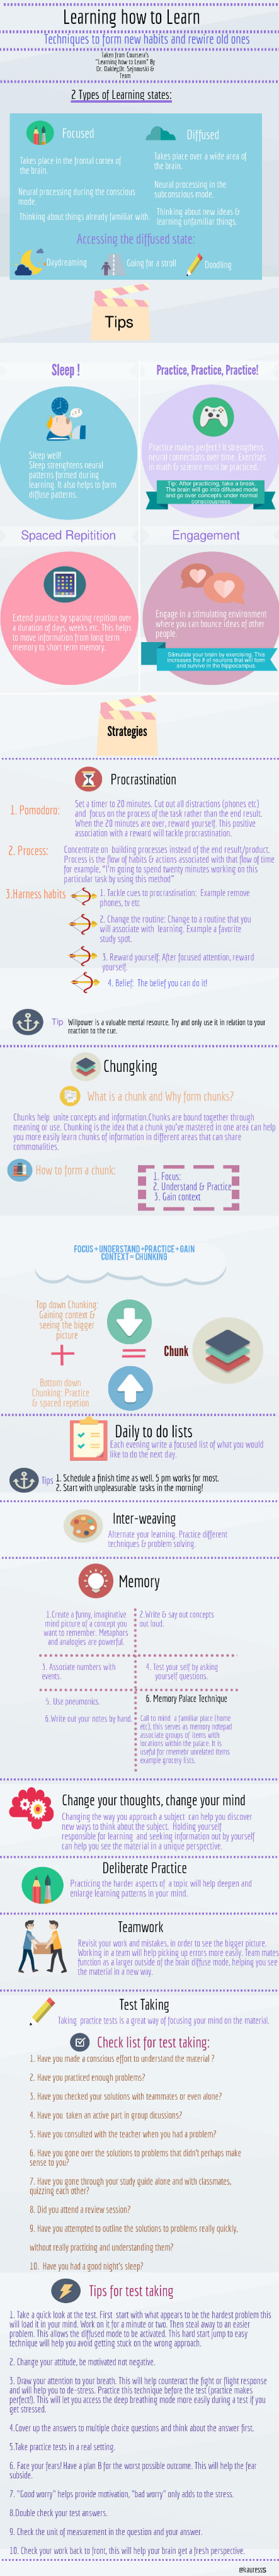 Learning how to learn infographic